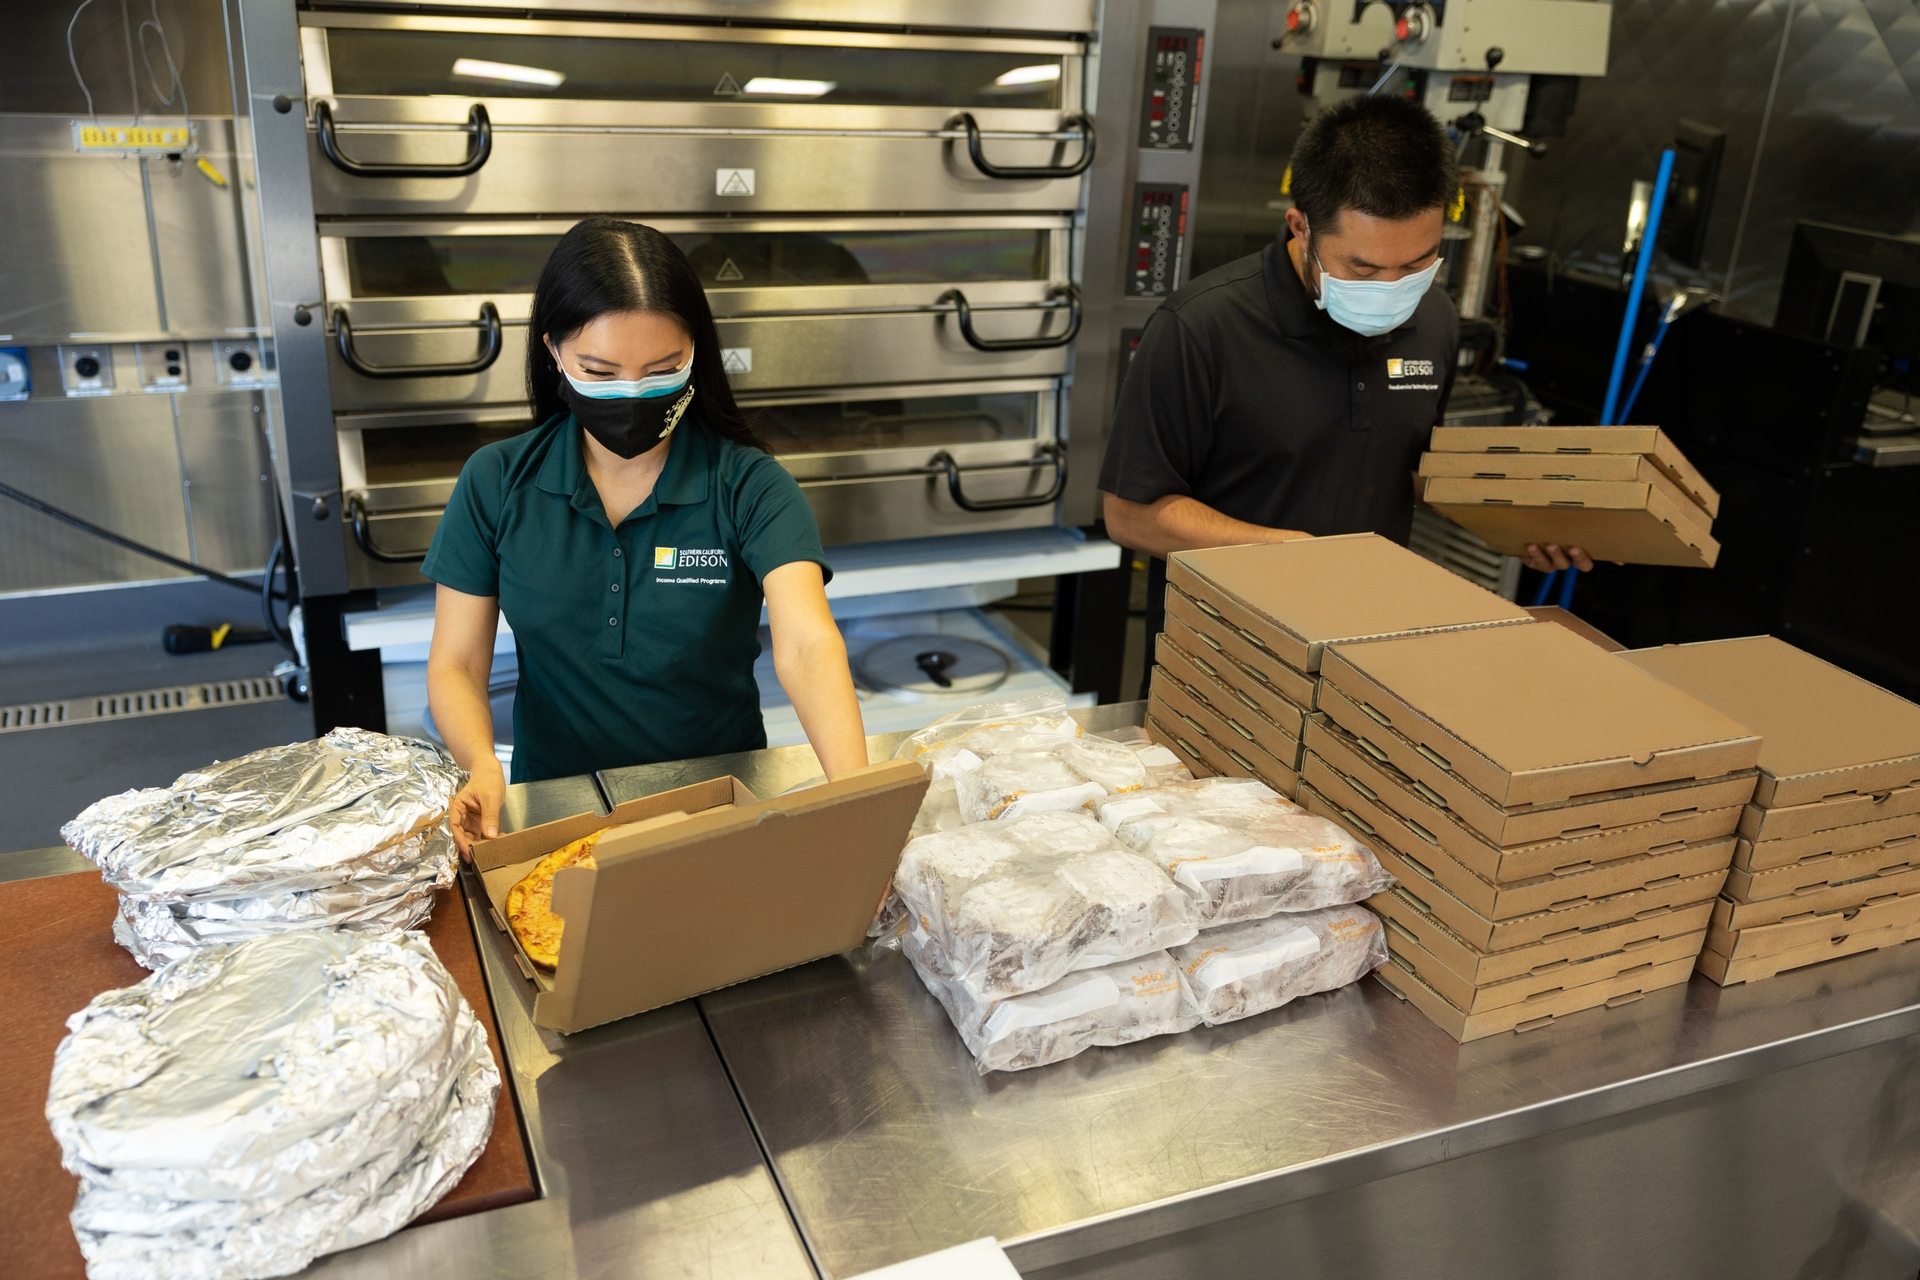 Team members from SCE's income-qualified programs and Foodservice Technology Center started a food donation initiative to address food insecurity.